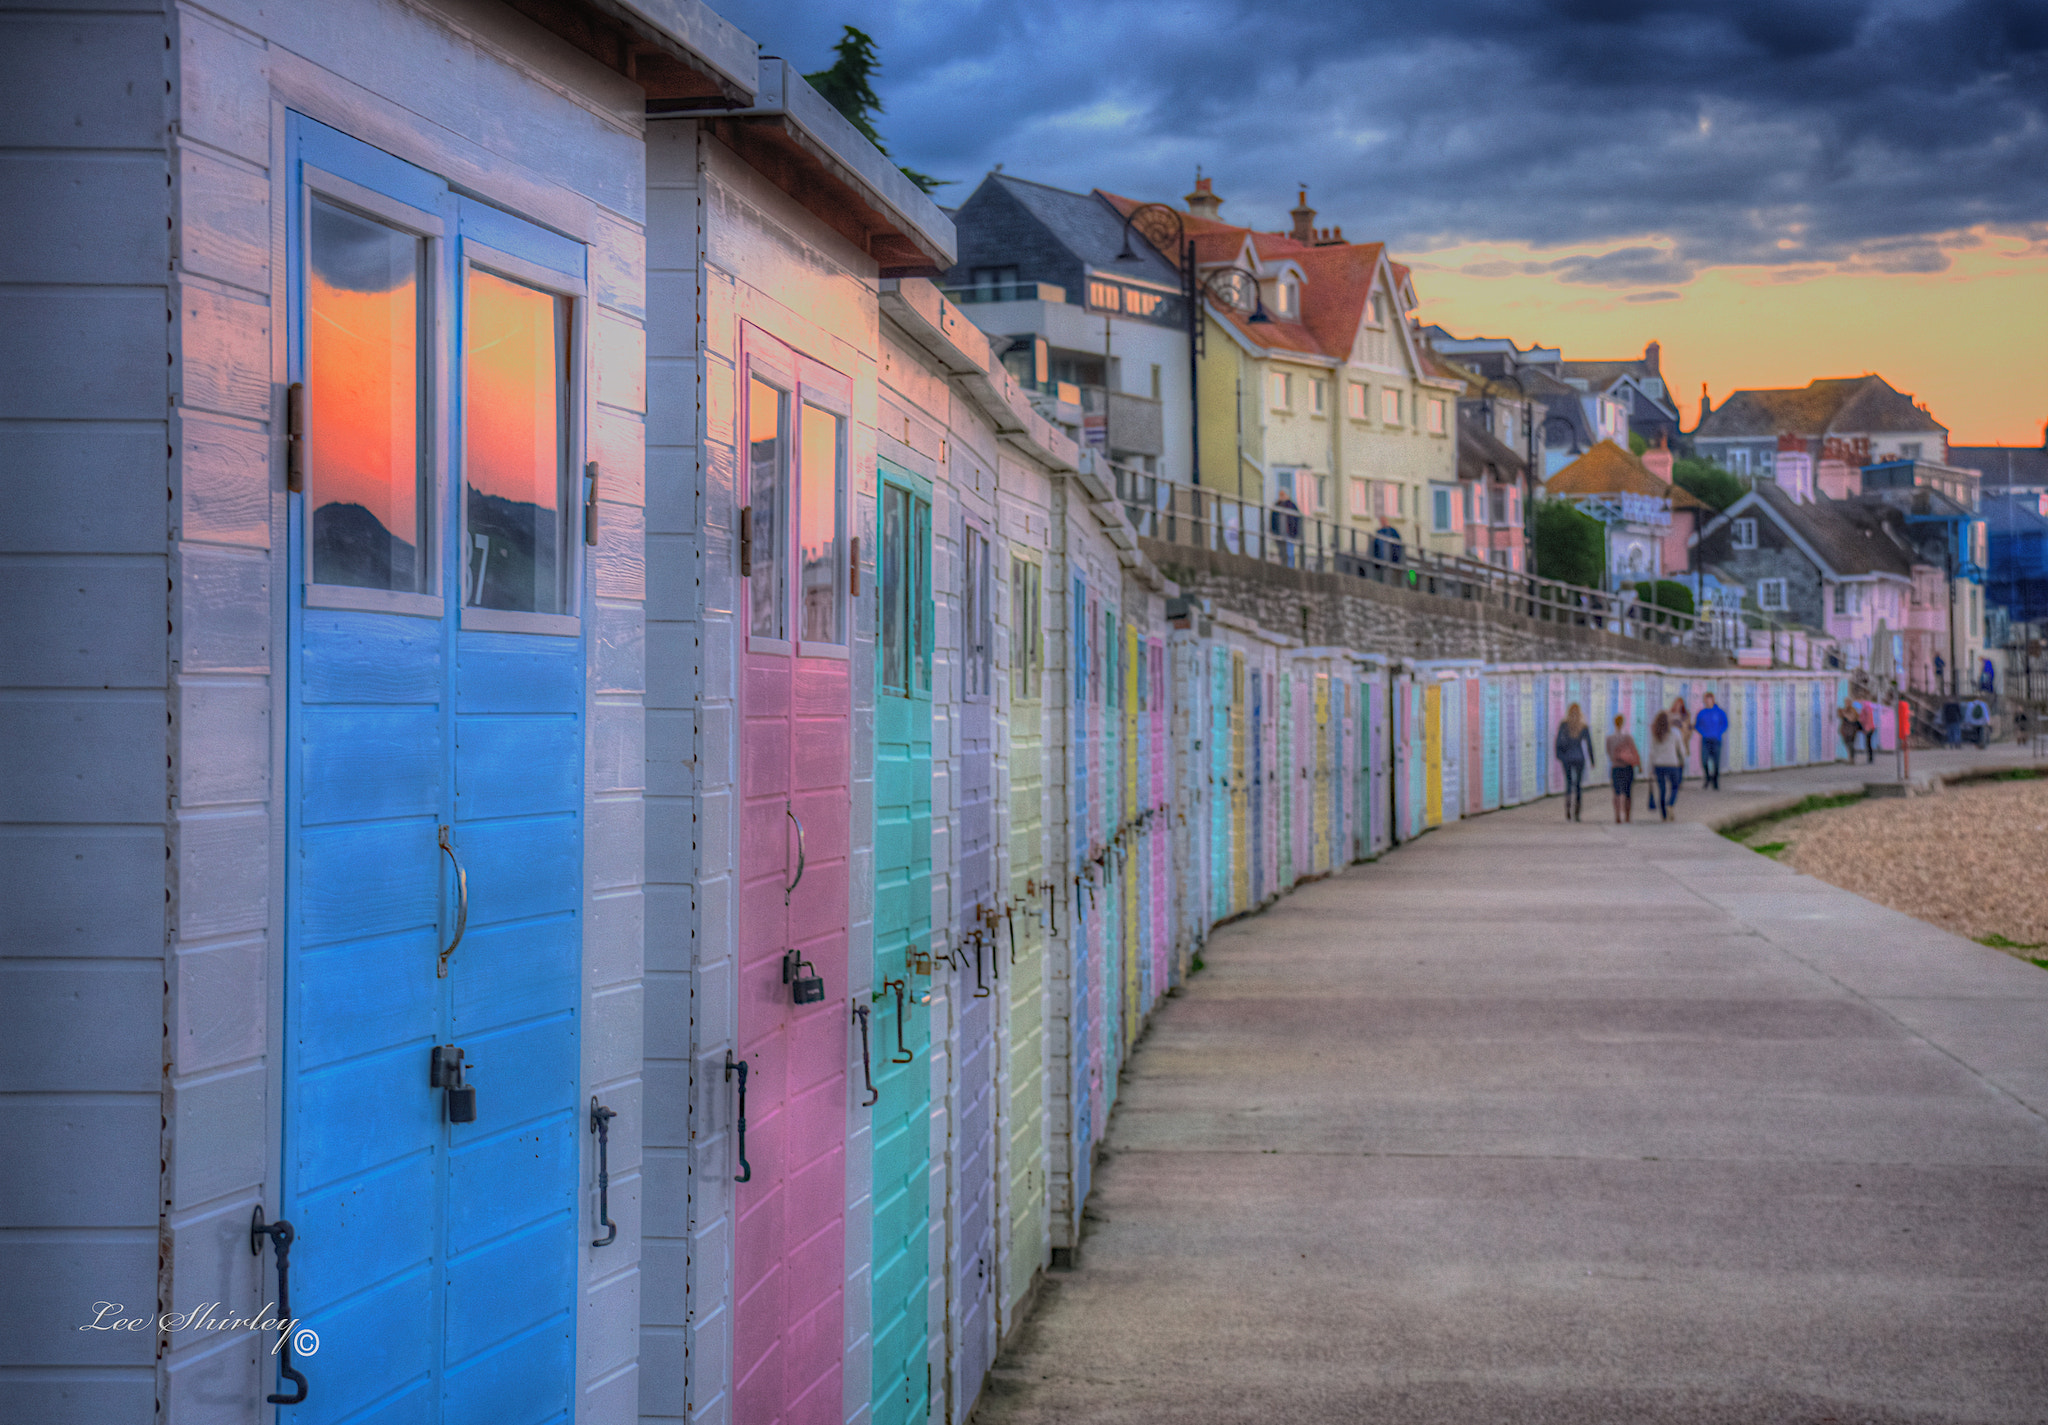 Photograph beach huts by Lee Shirley on 500px